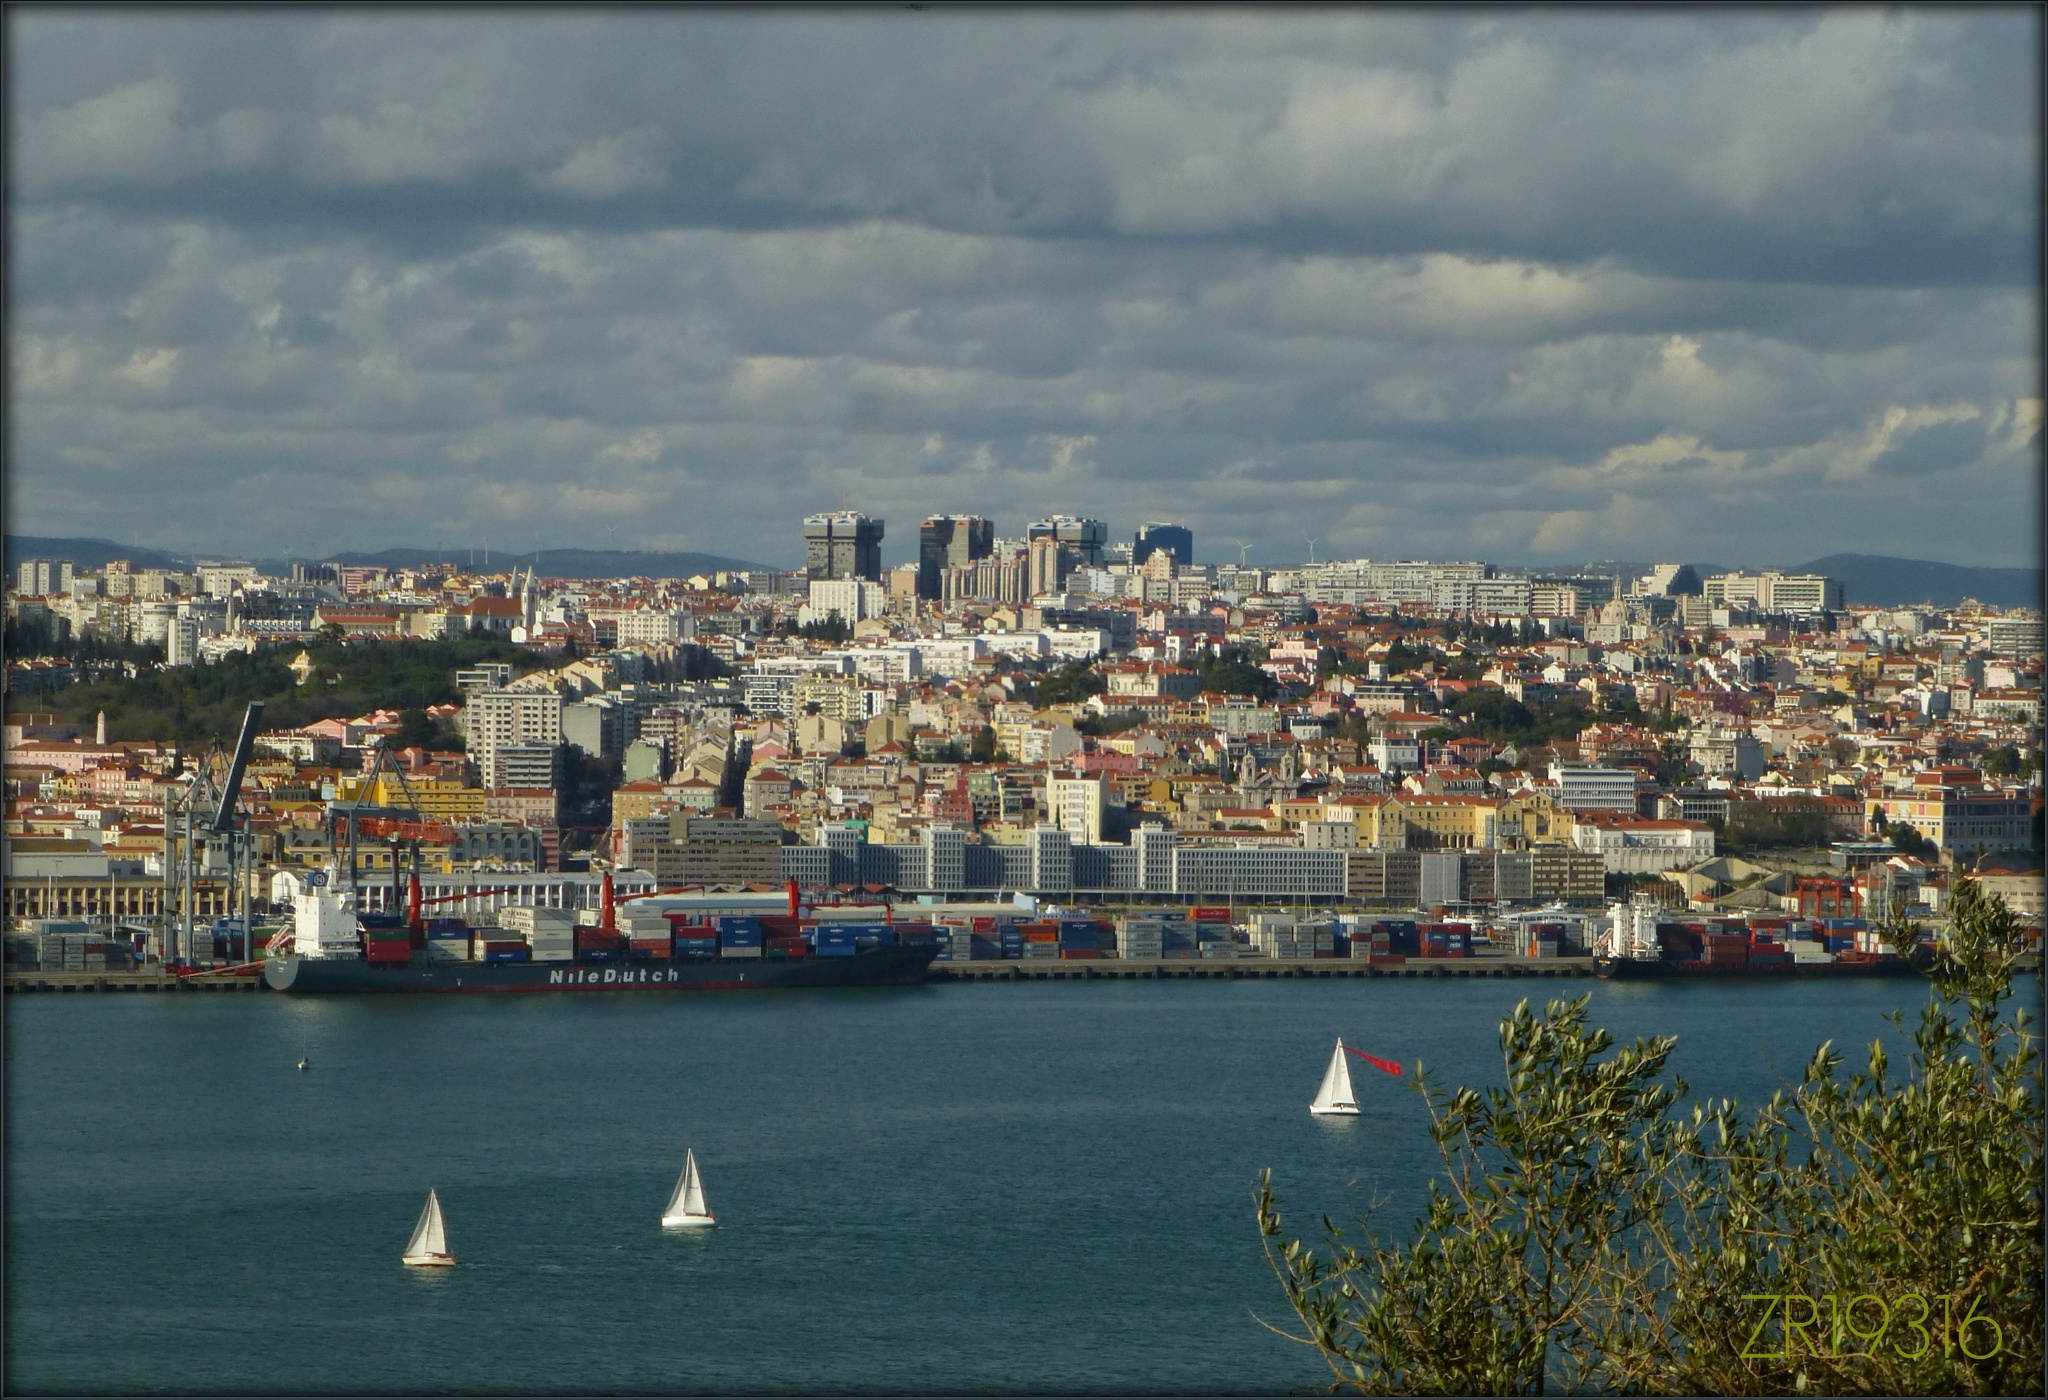 Lisboa, desde a margem sul do Tejo / Lisbon, from Tagus south bank. by ricardoXPTOferreira